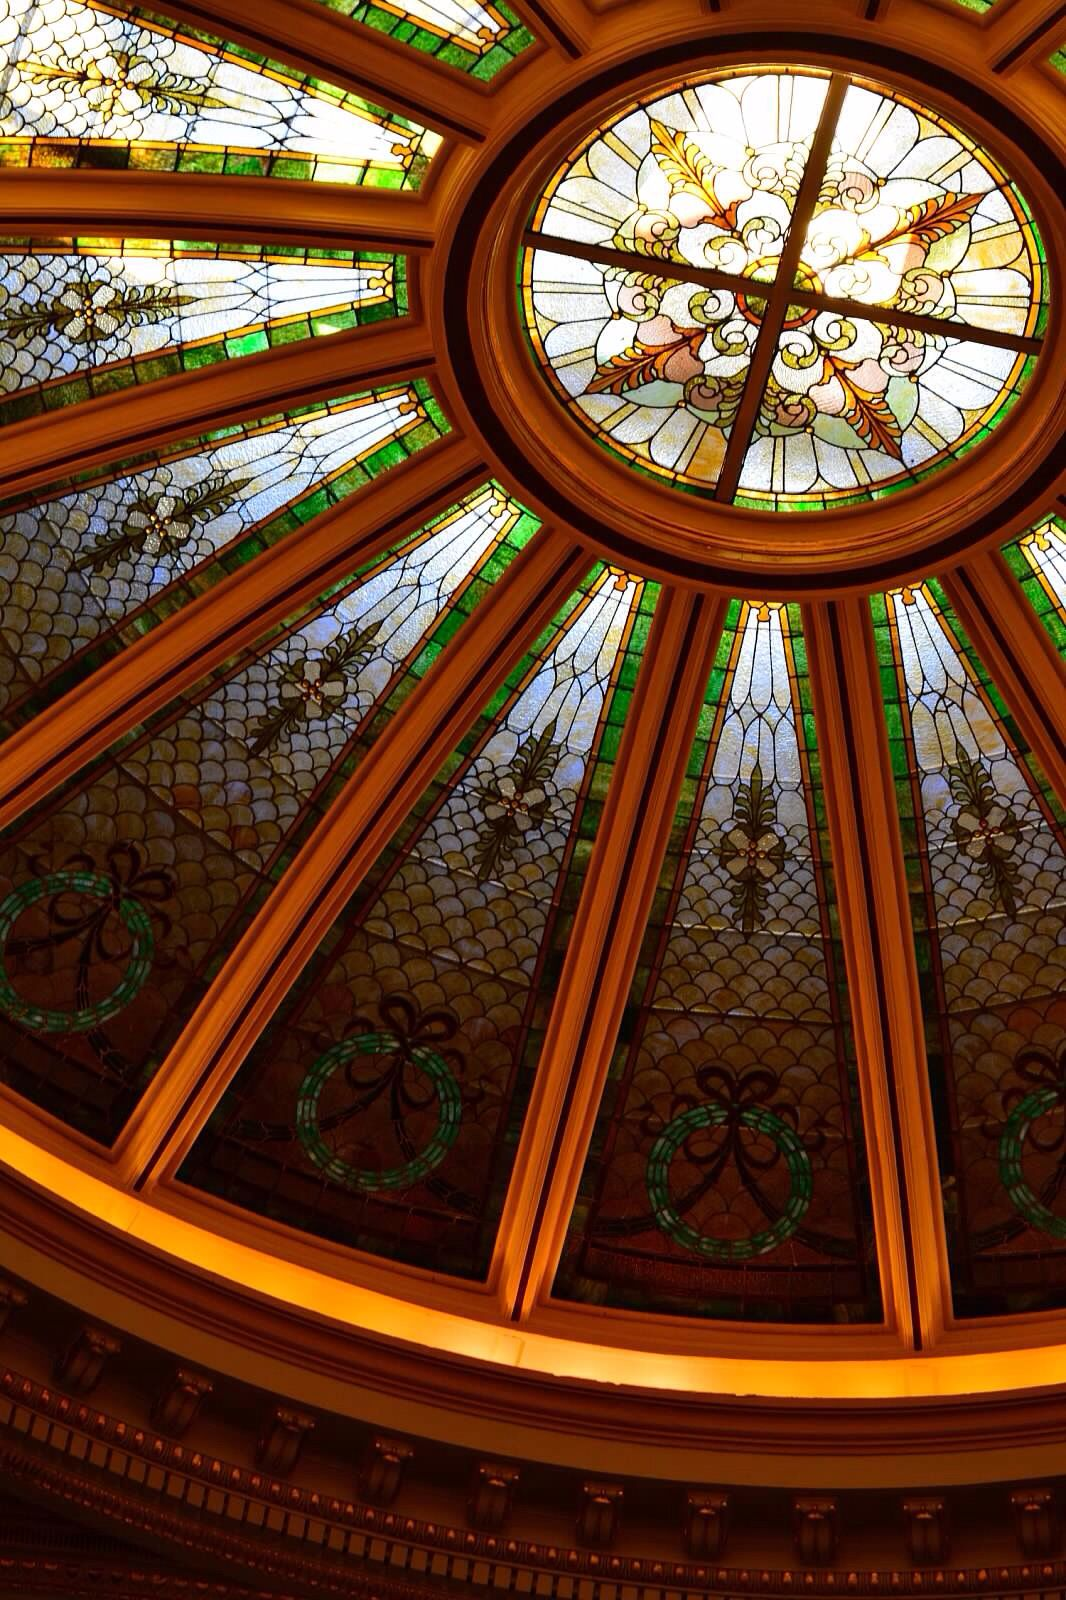 Stained Glass Dome At The Anderson Center For The Arts Stained Glass Mirror Stained Glass Windows Stained Glass